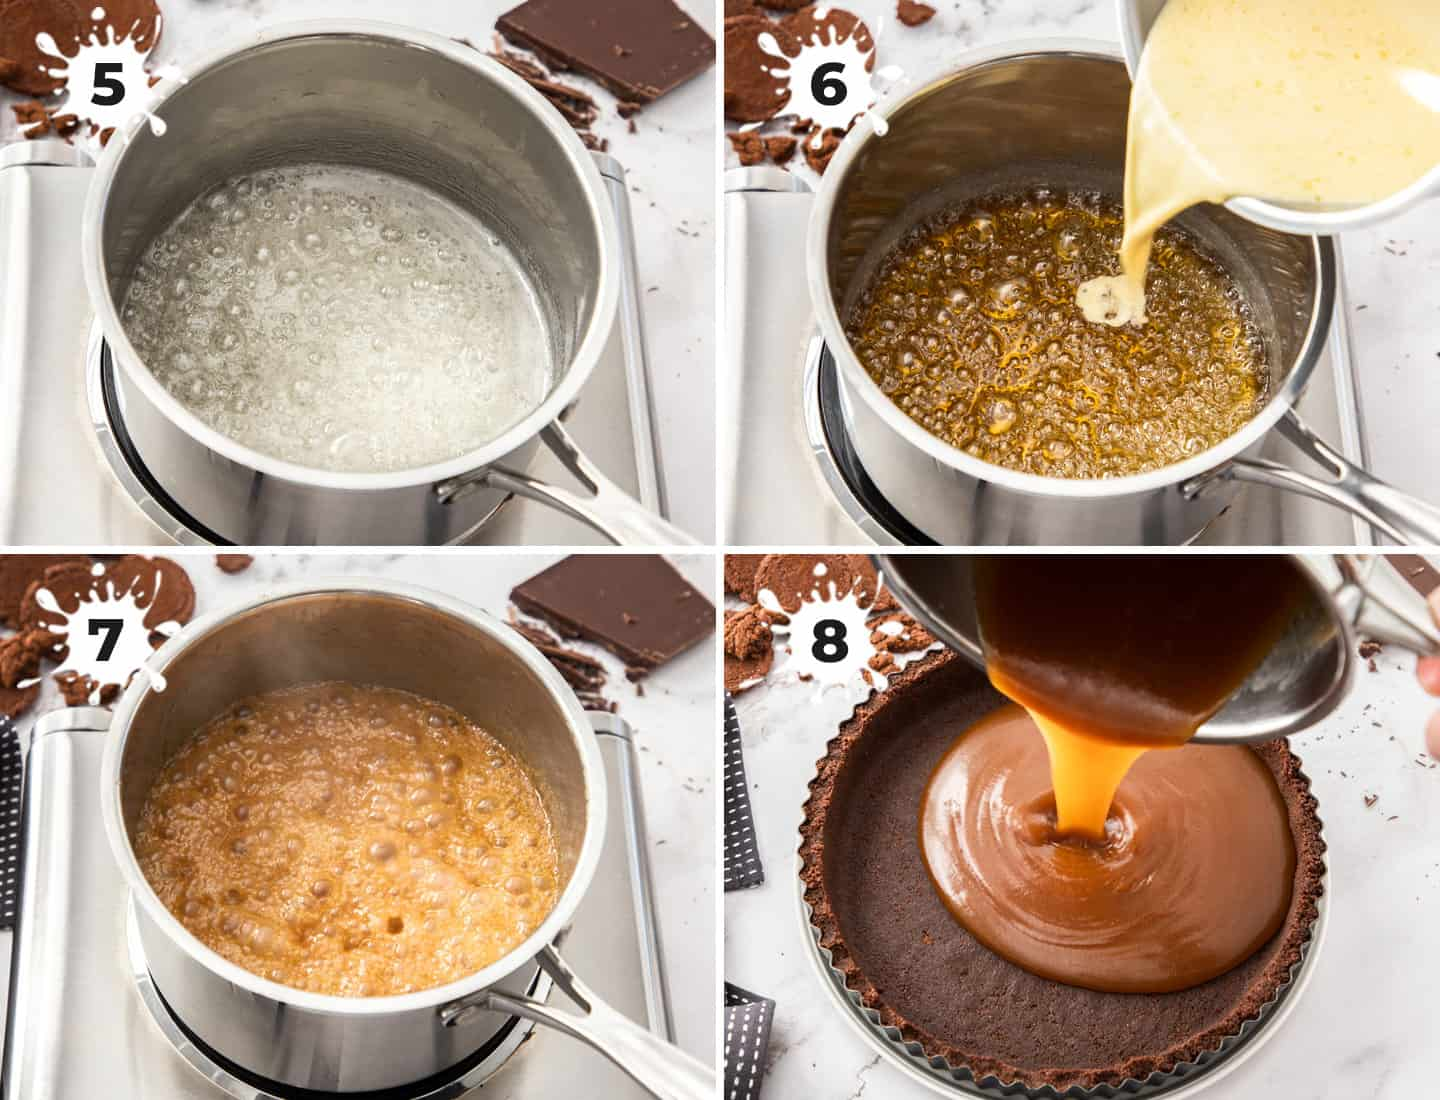 4 images showing how to make salted caramel from scratch.